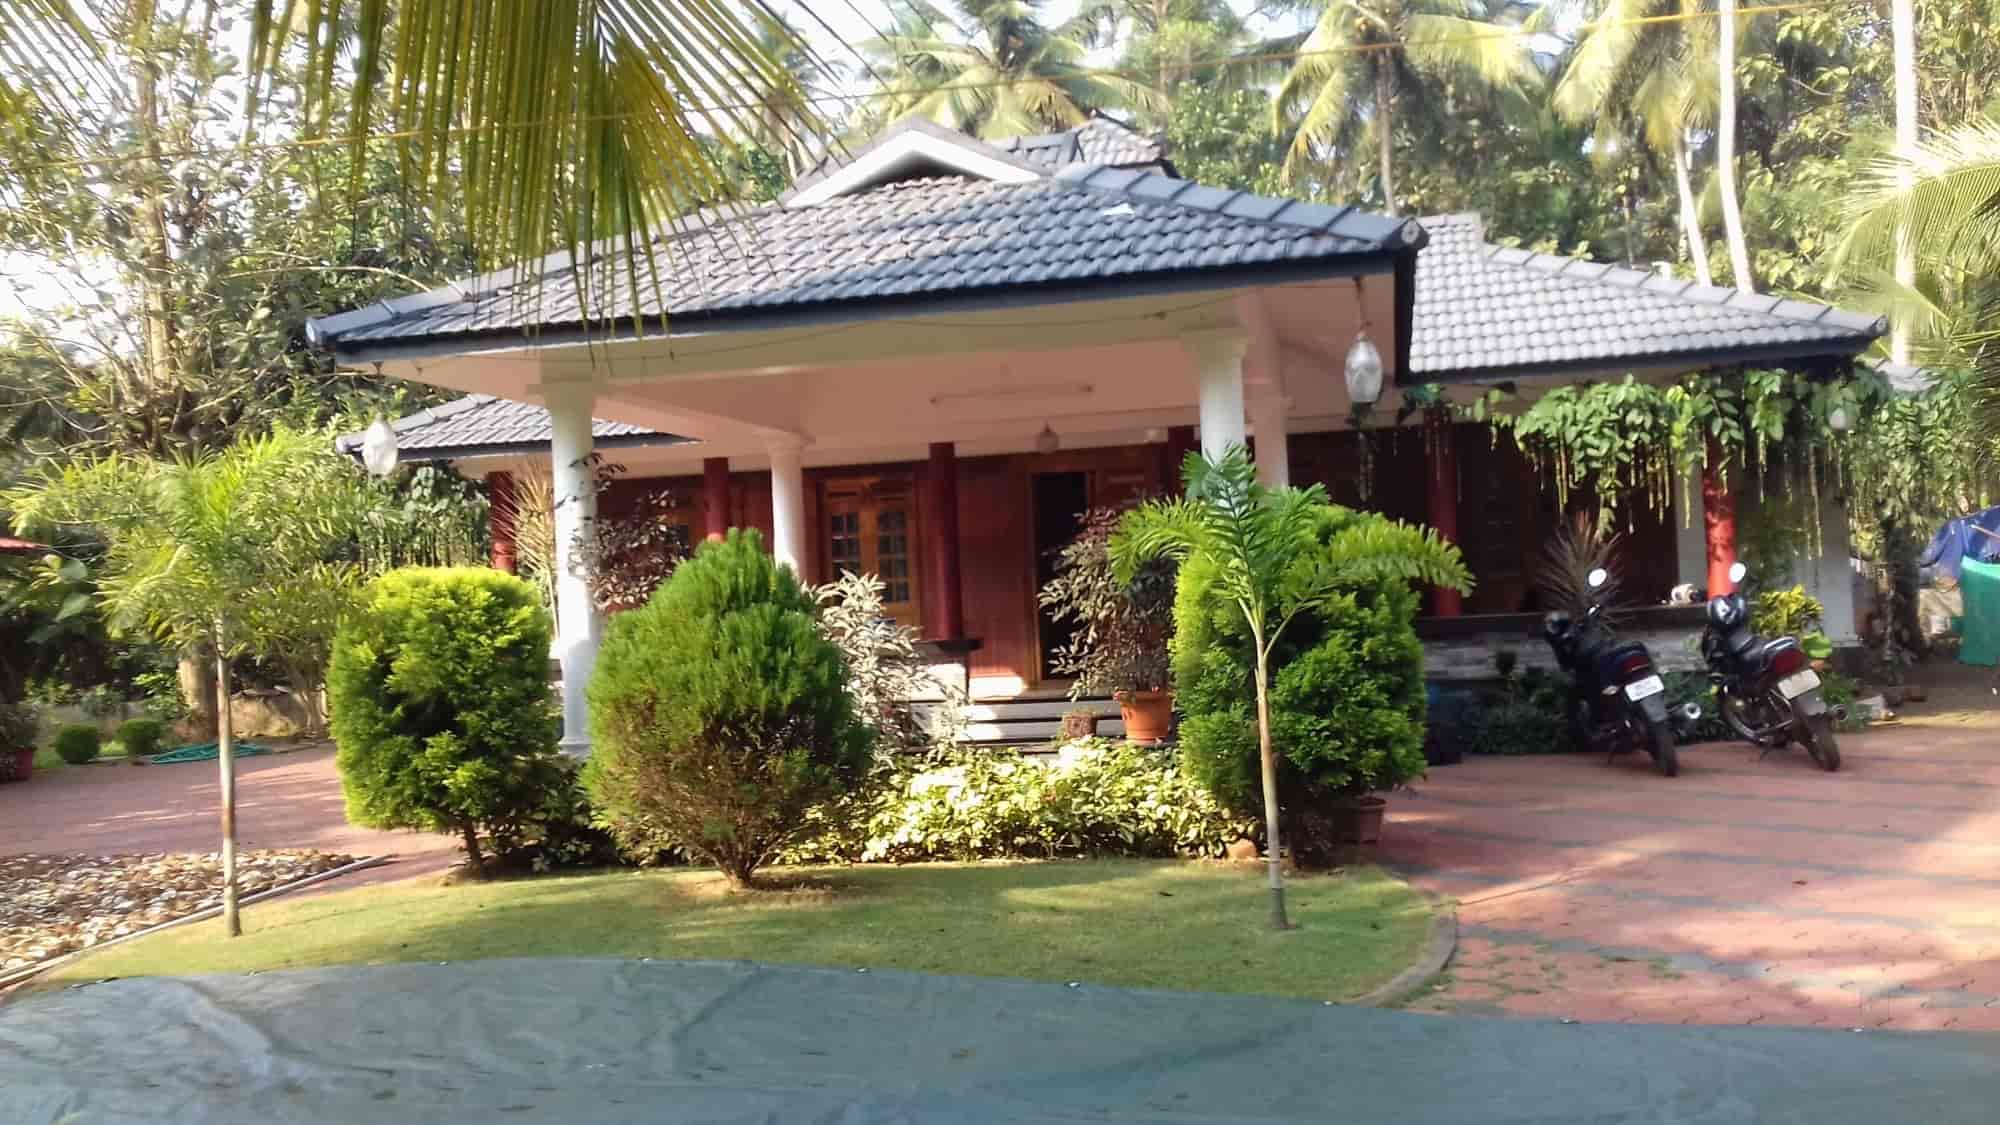 Arcon Intlands Pvt Ltd, Sulthan Bathery - Architects in Wayanad